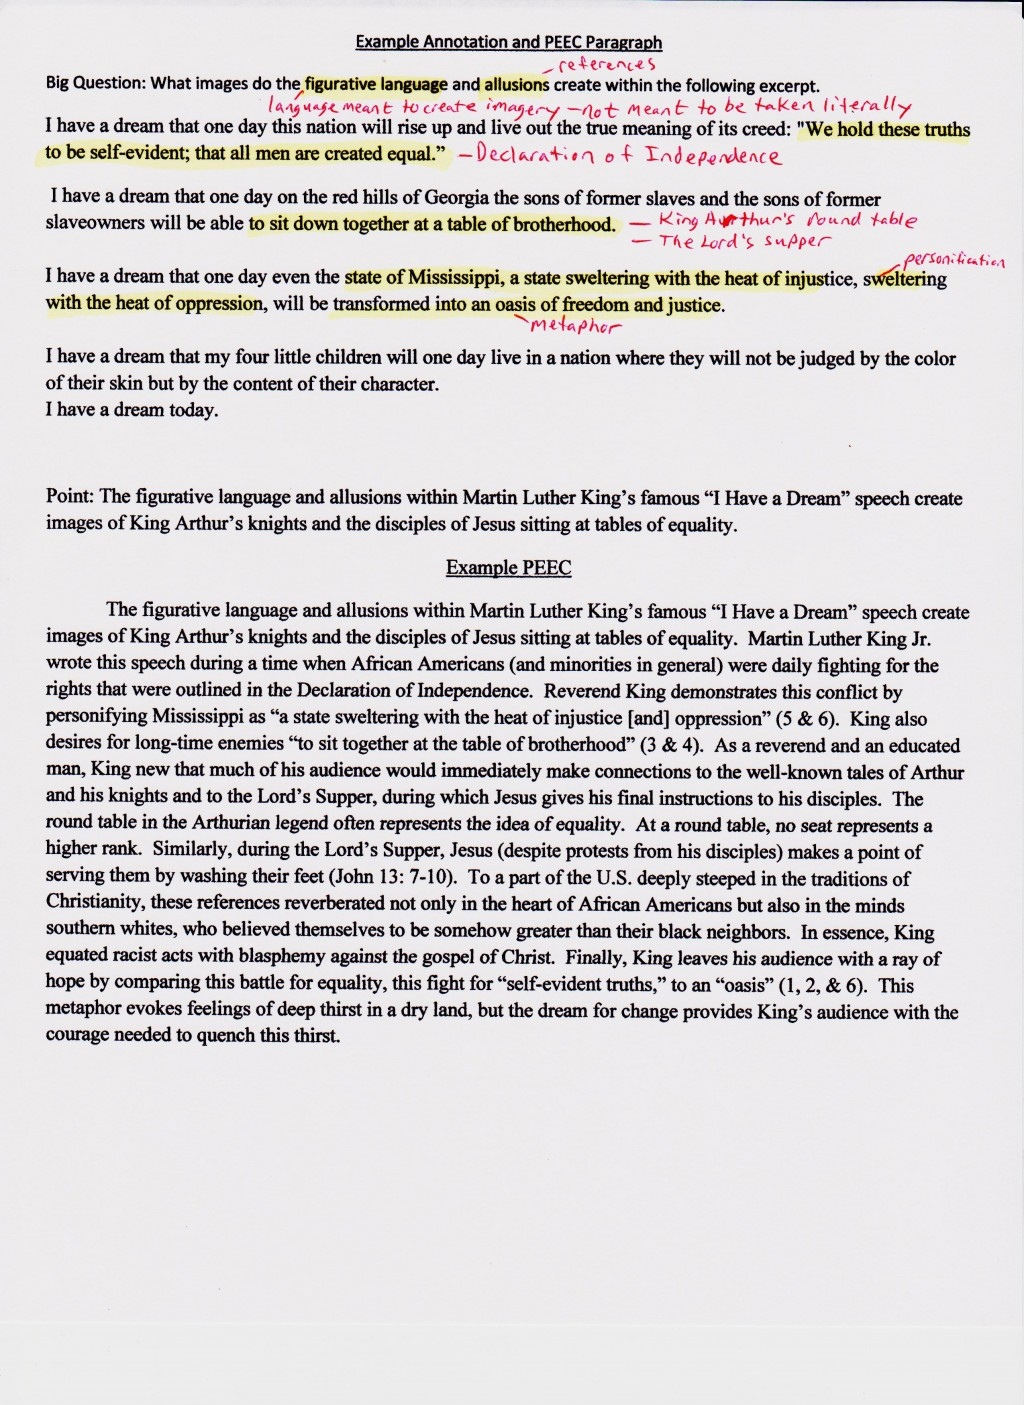 004 Example20annotation20and20plea20001 Essay Example Njhs Wondrous Samples Large